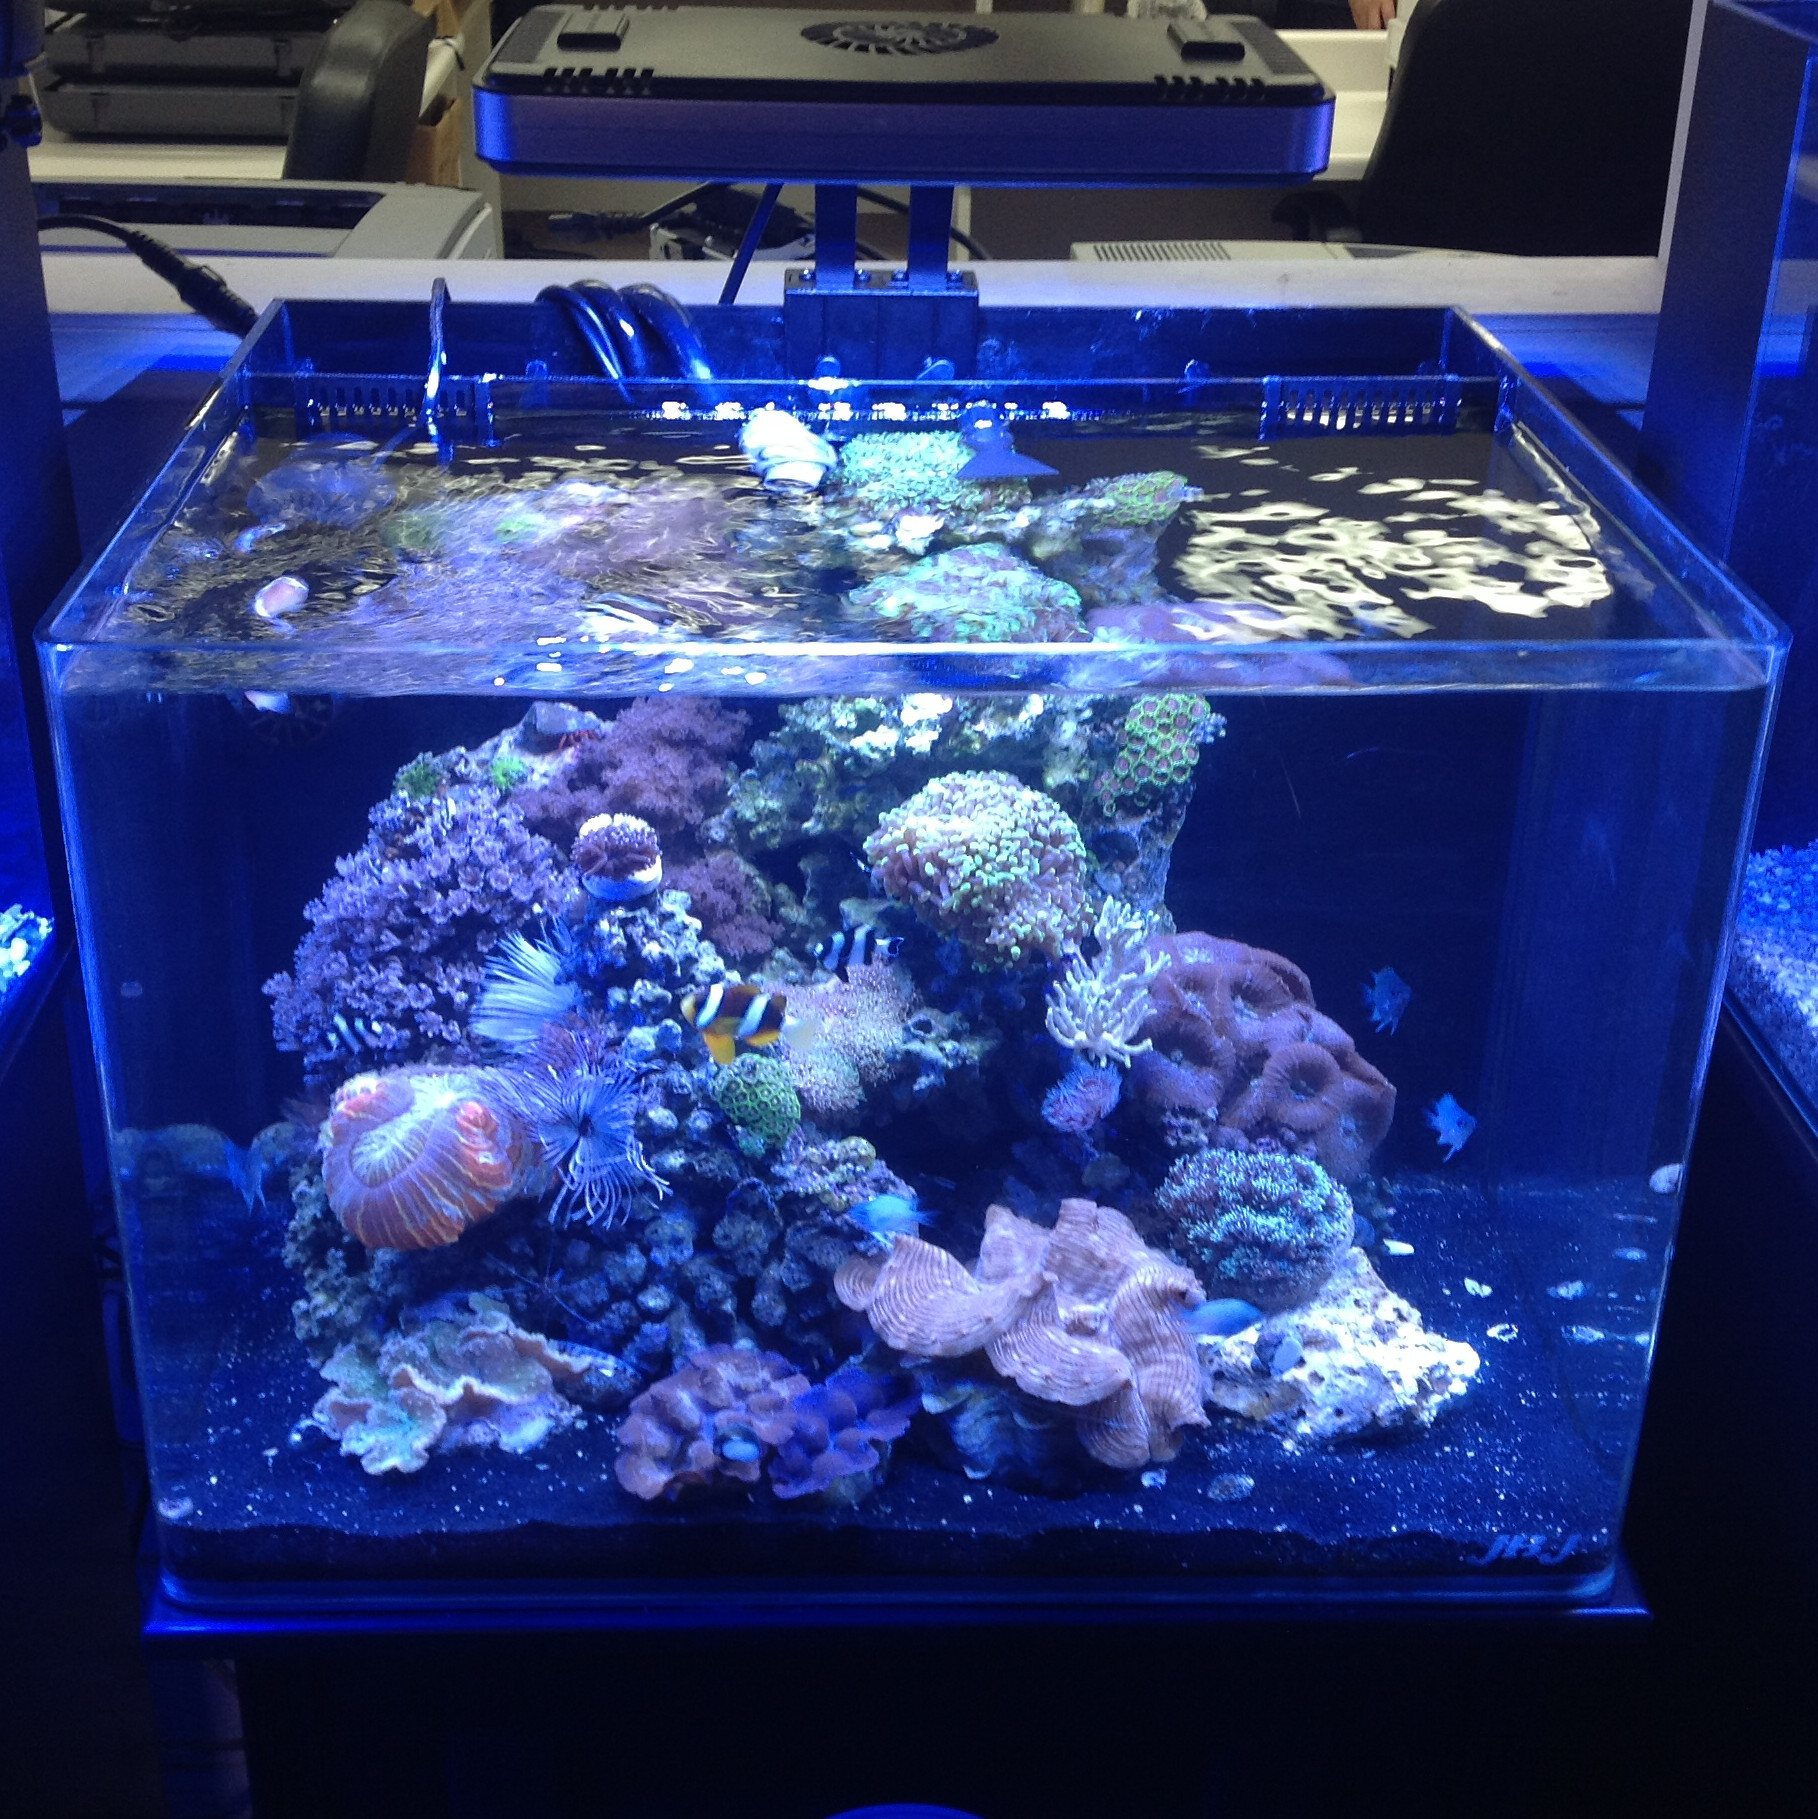 Nano led aquarium fish tank lighting - Stocking Power Compact Lighting Submariner Uv Sterilizer As Well As All Sizes Of The Nano Cube Tanks